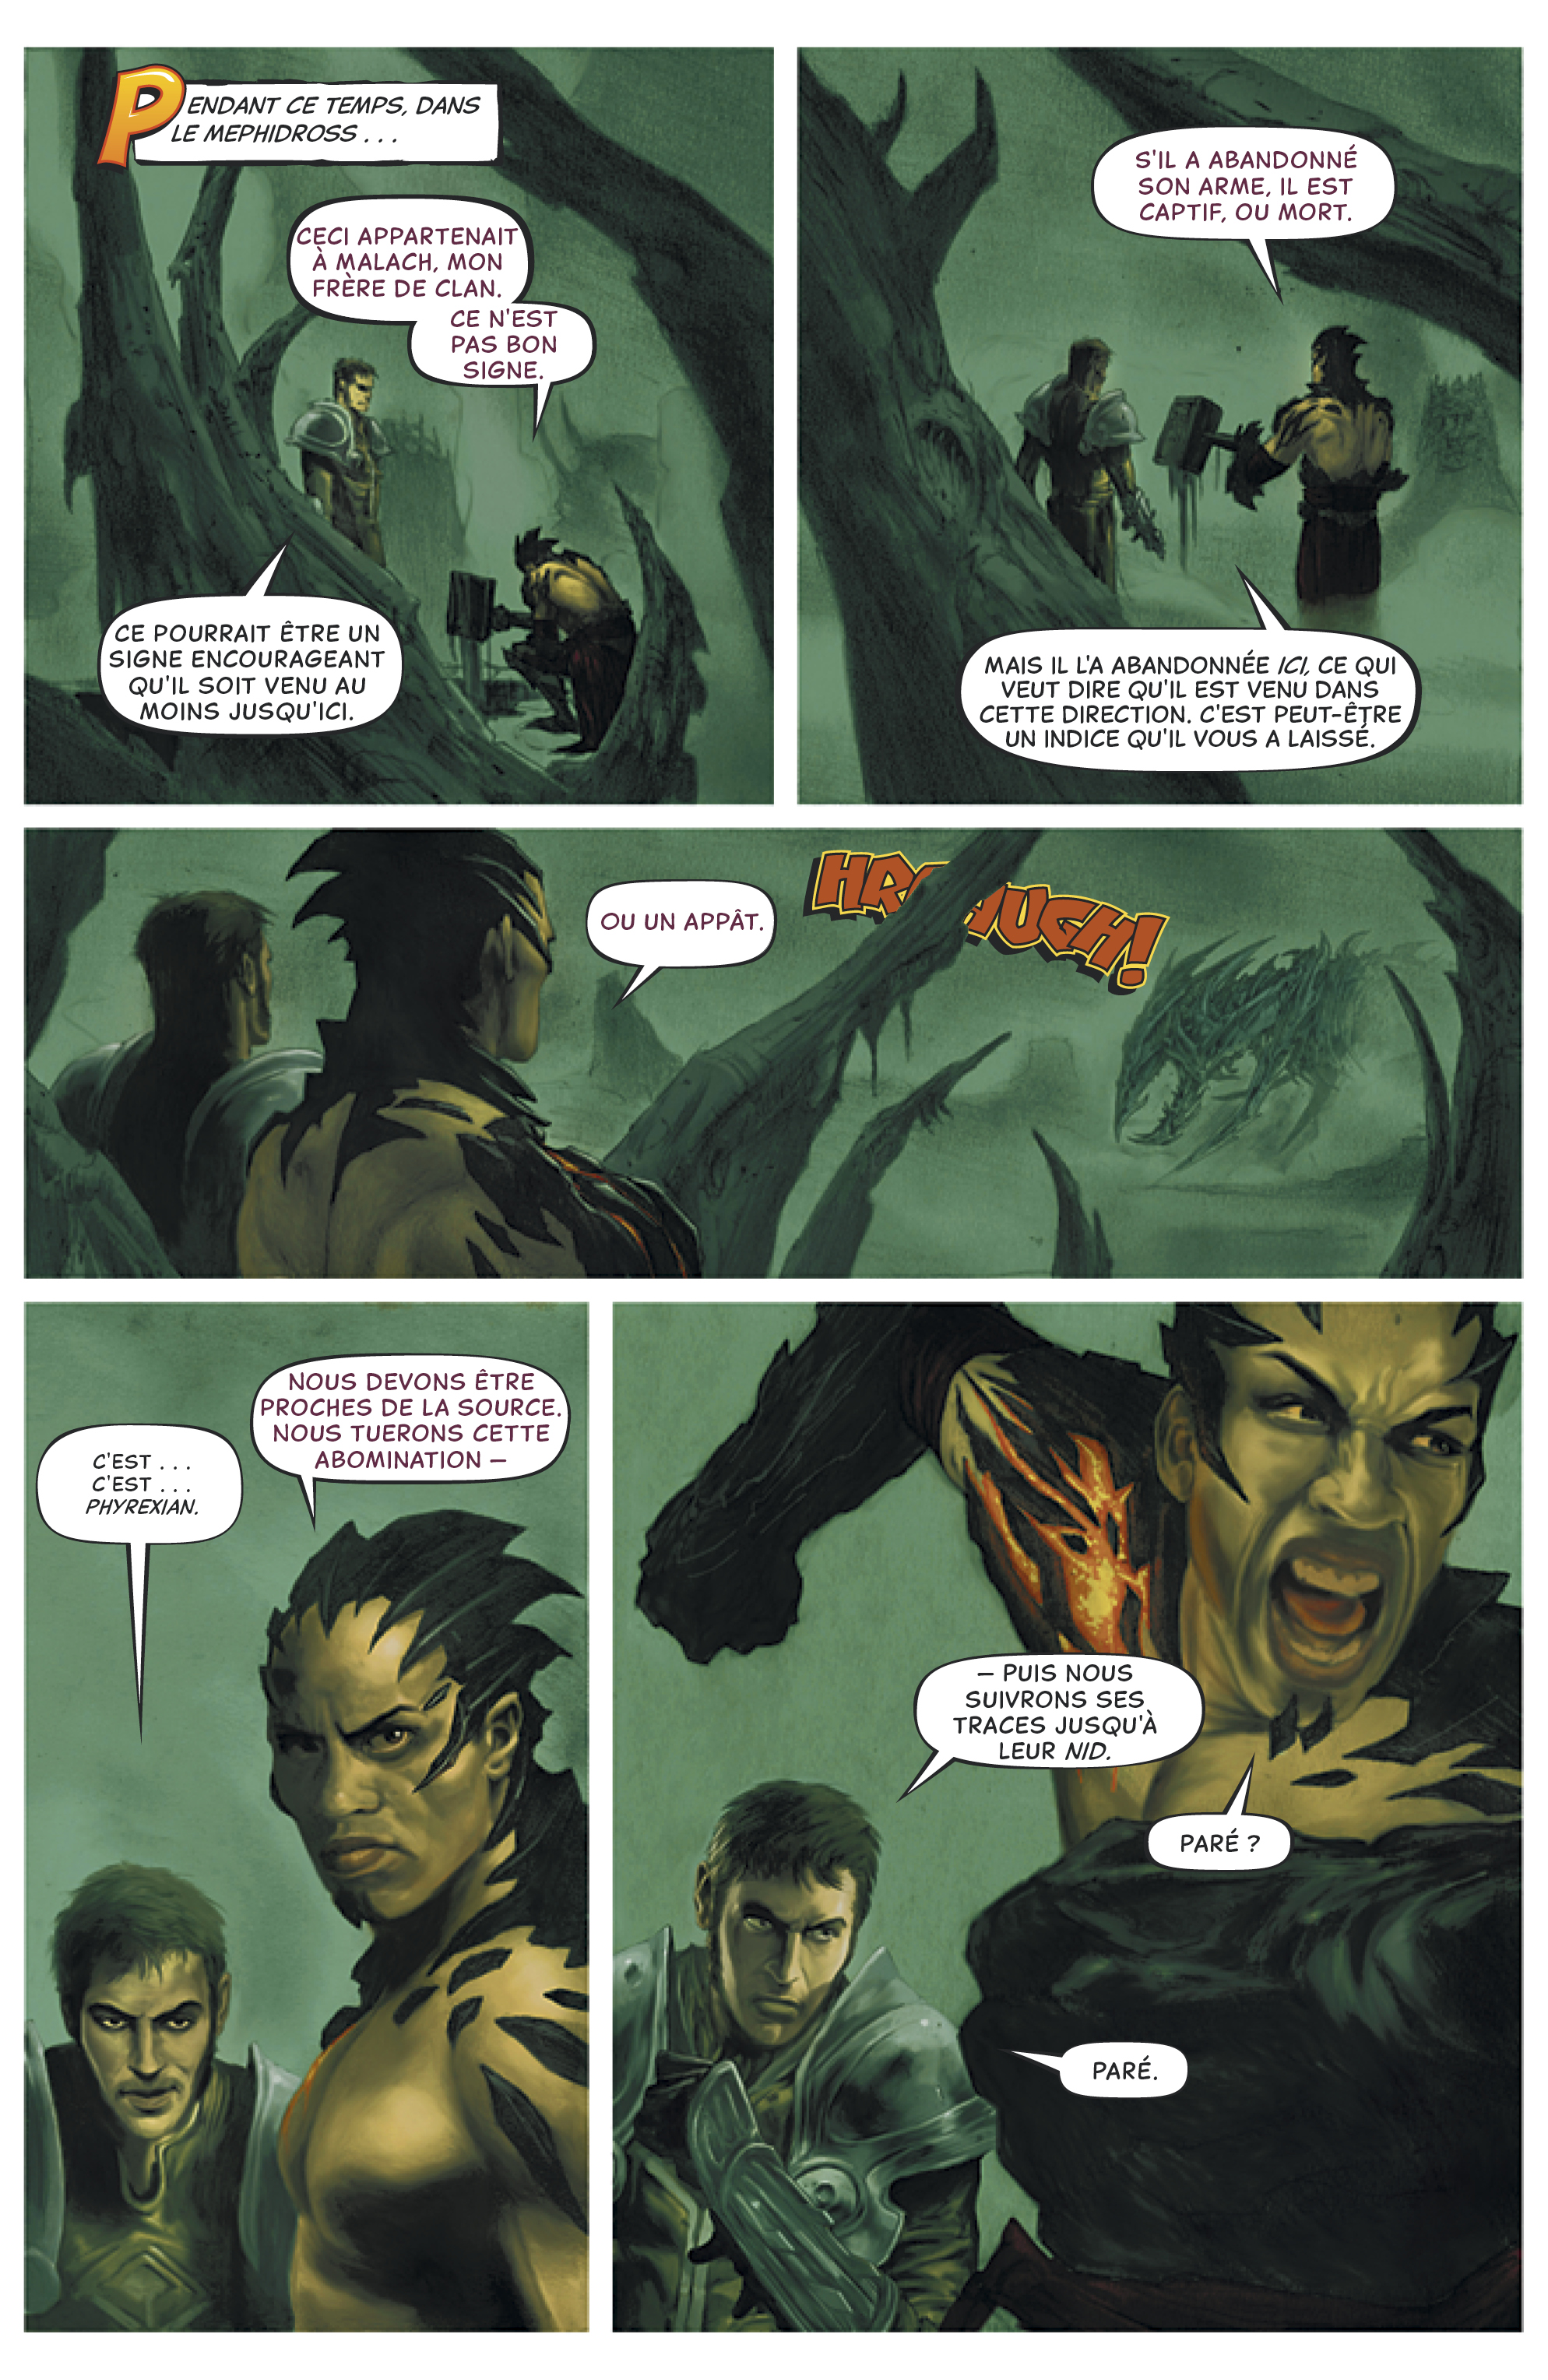 Scarred, Part 2: Page 7